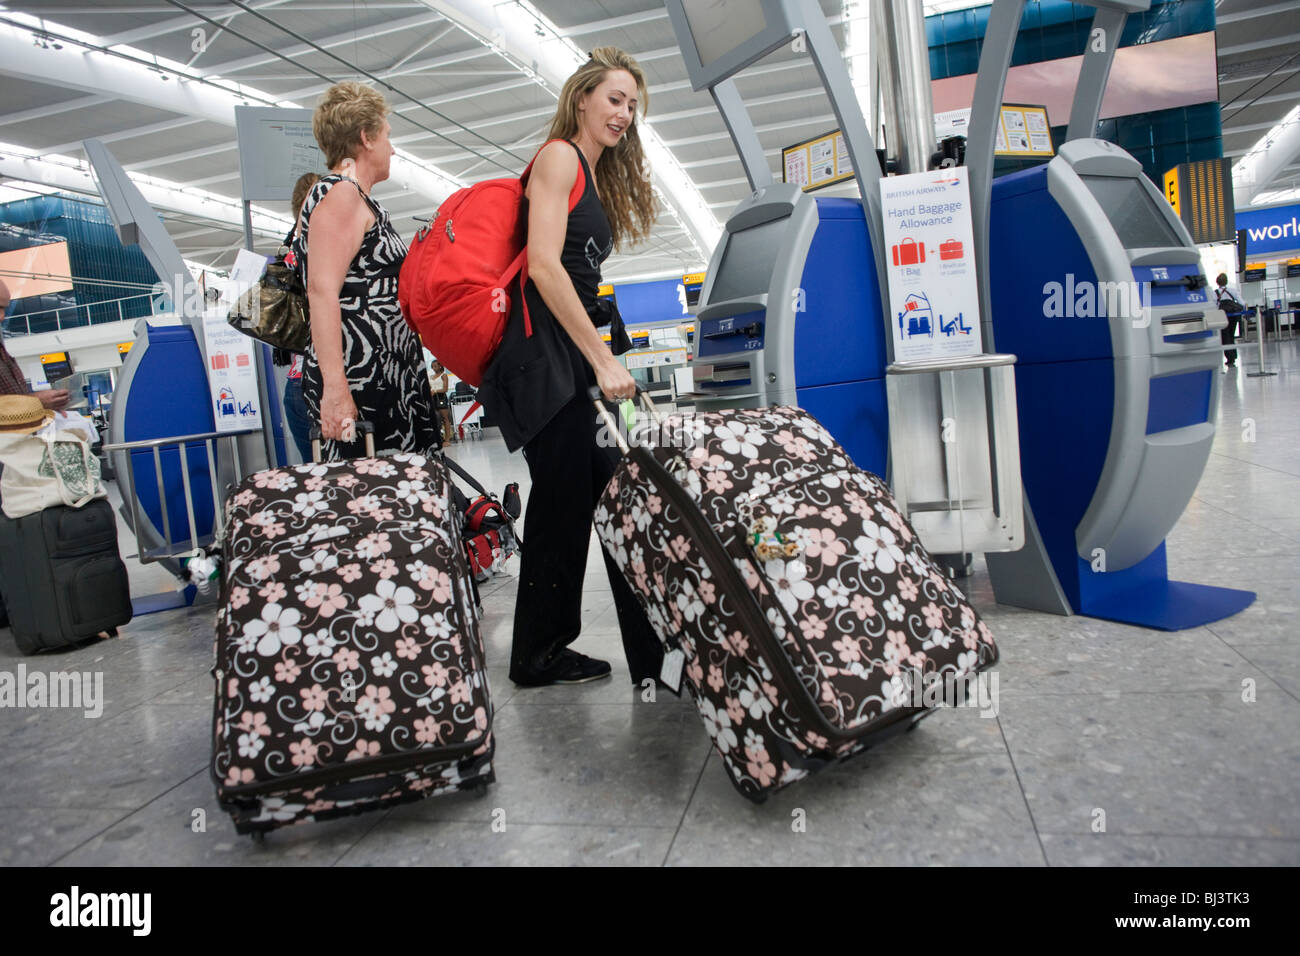 Two lady passengers haul matching suitcases at the British Airways self-check-in kiosk at Heathrow Airport's - Stock Image